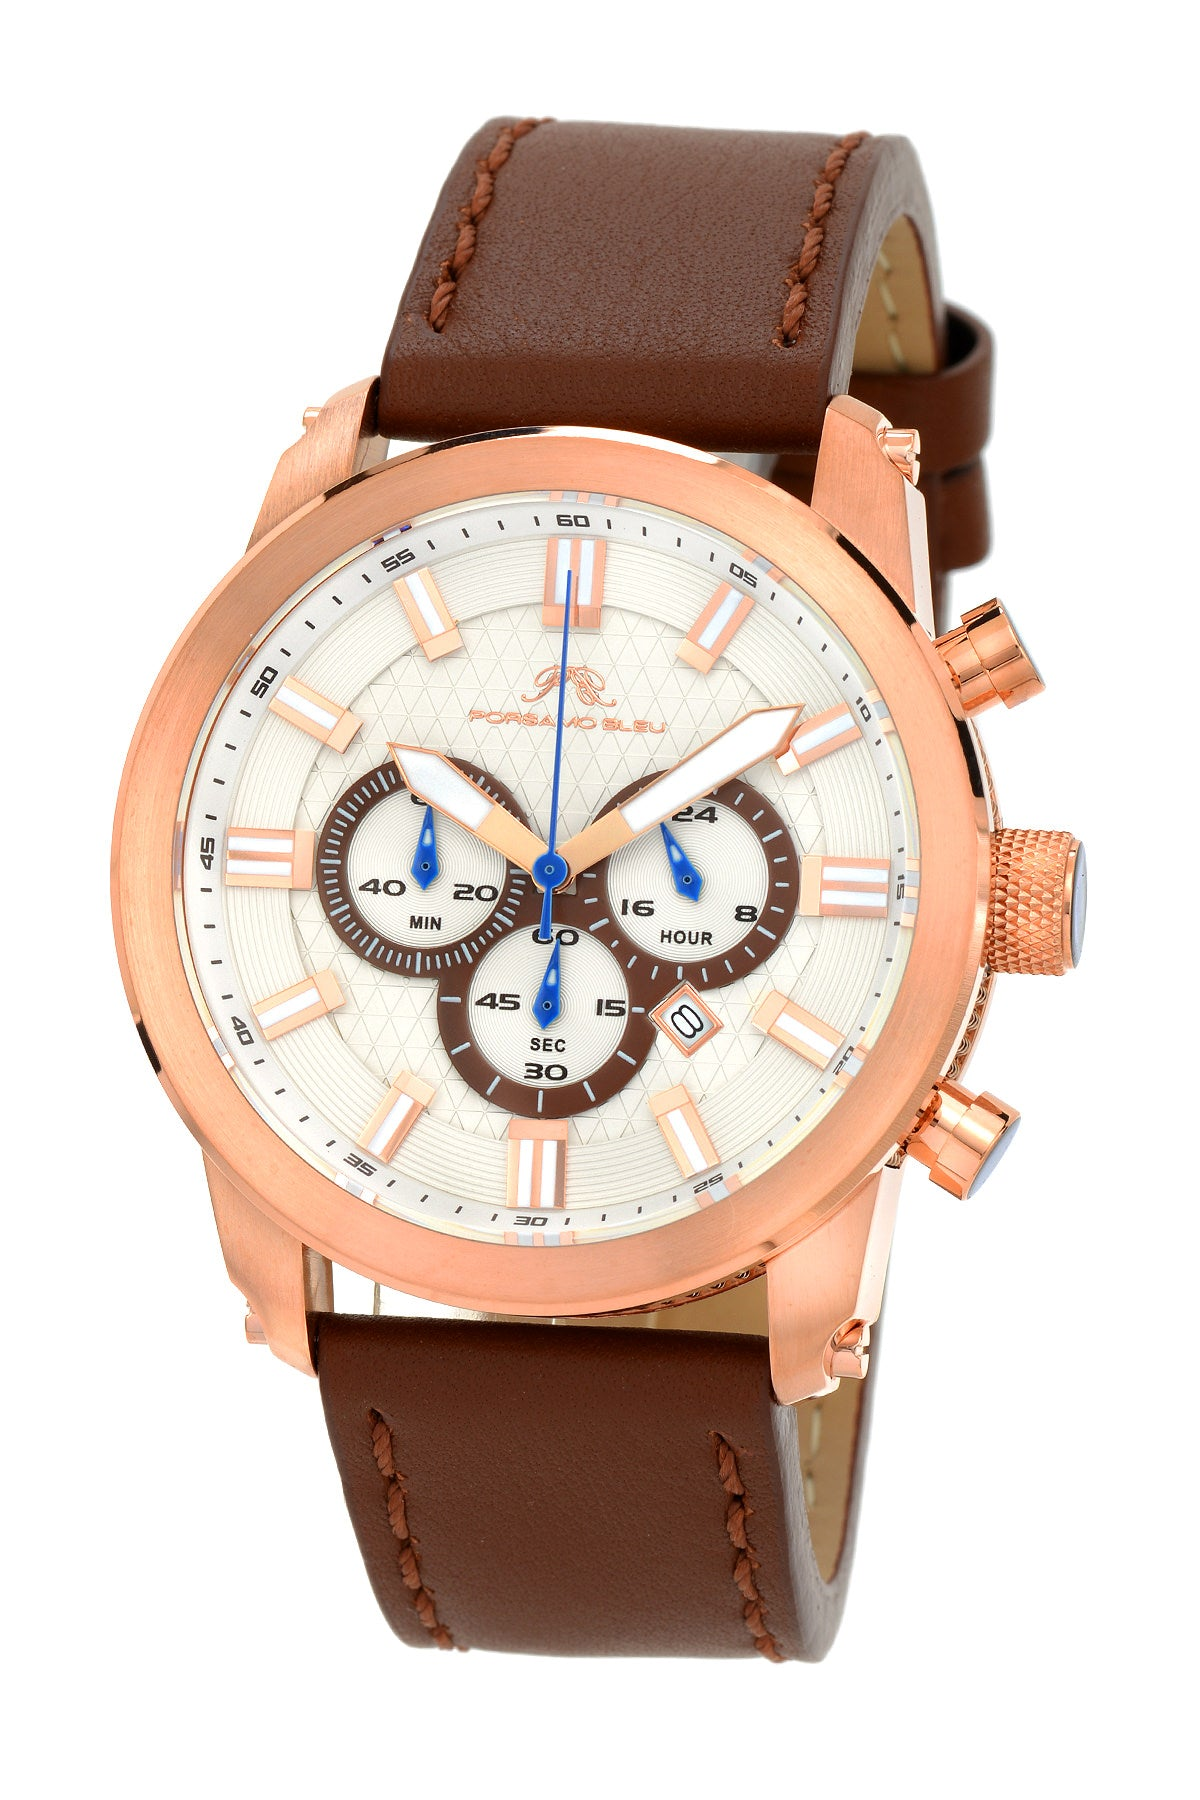 Porsamo Bleu Demetrios luxury chronograph men's watch, genuine leather band, rose, brown 602CDEL